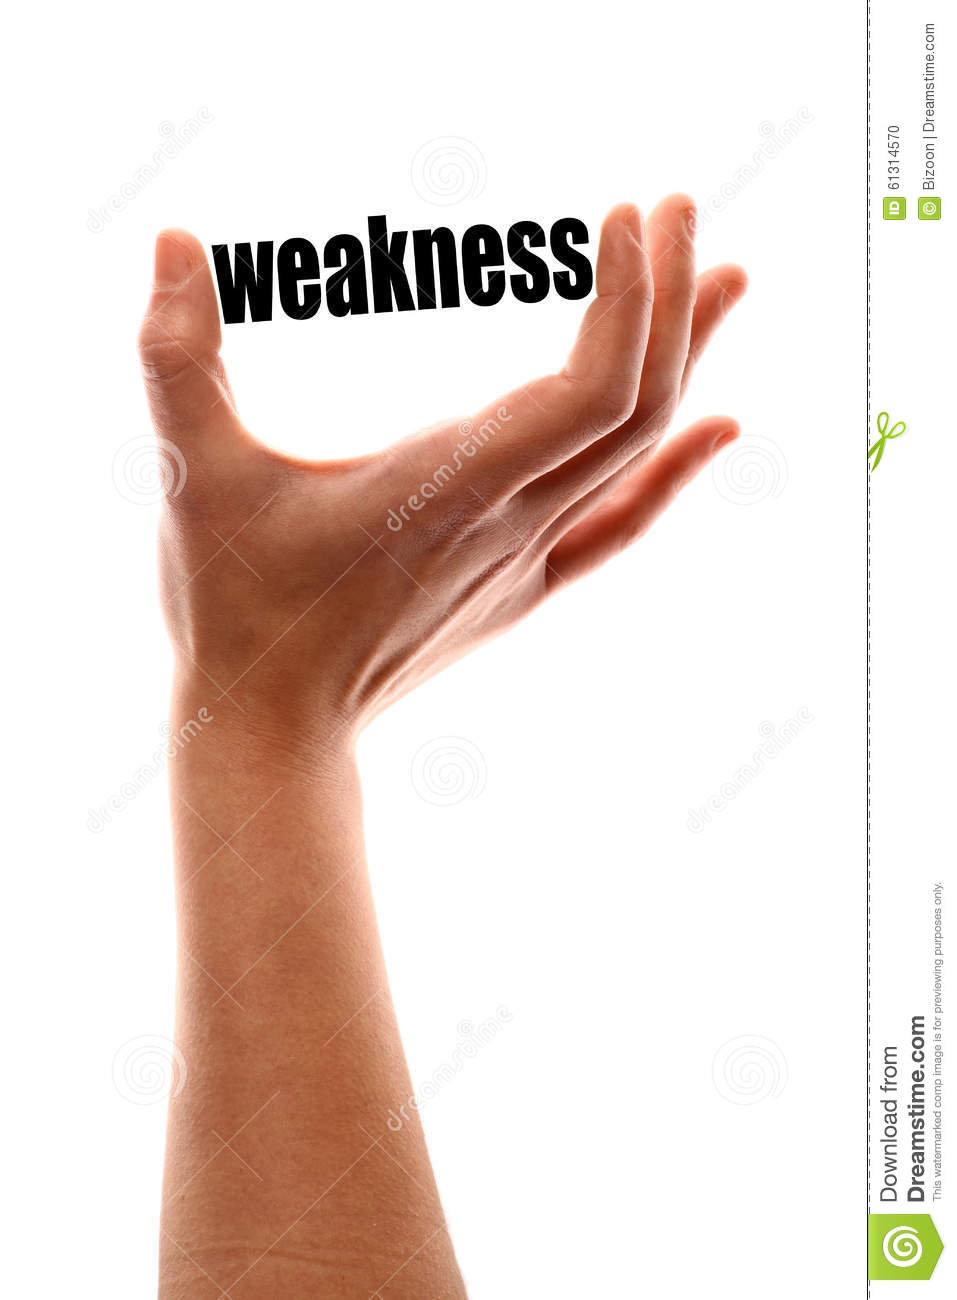 Stock Illustration Smaller Weakness Color Vertical Shot Hand Squeezing Word Image61314570 on Body Parts Picture Word Cards